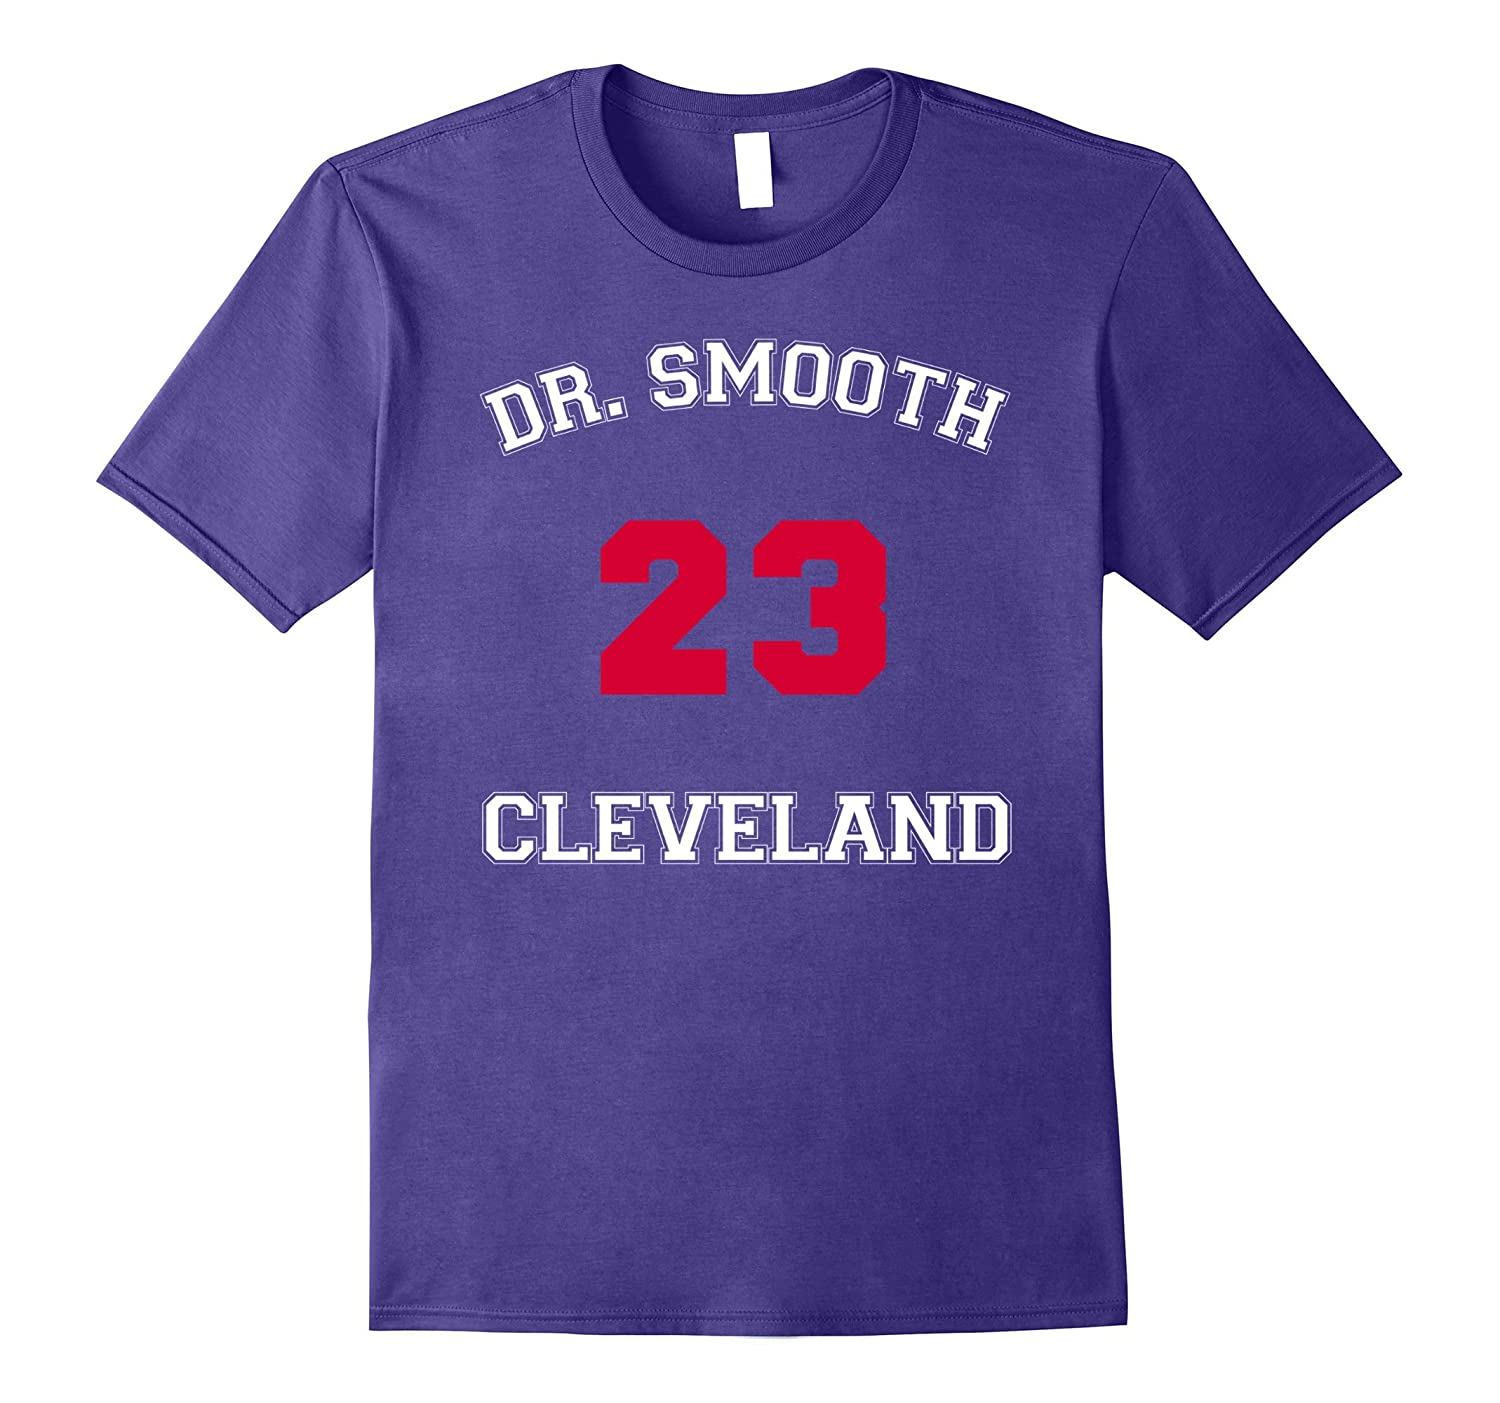 Dr Smooth 23 Cleveland T-Shirt-TH